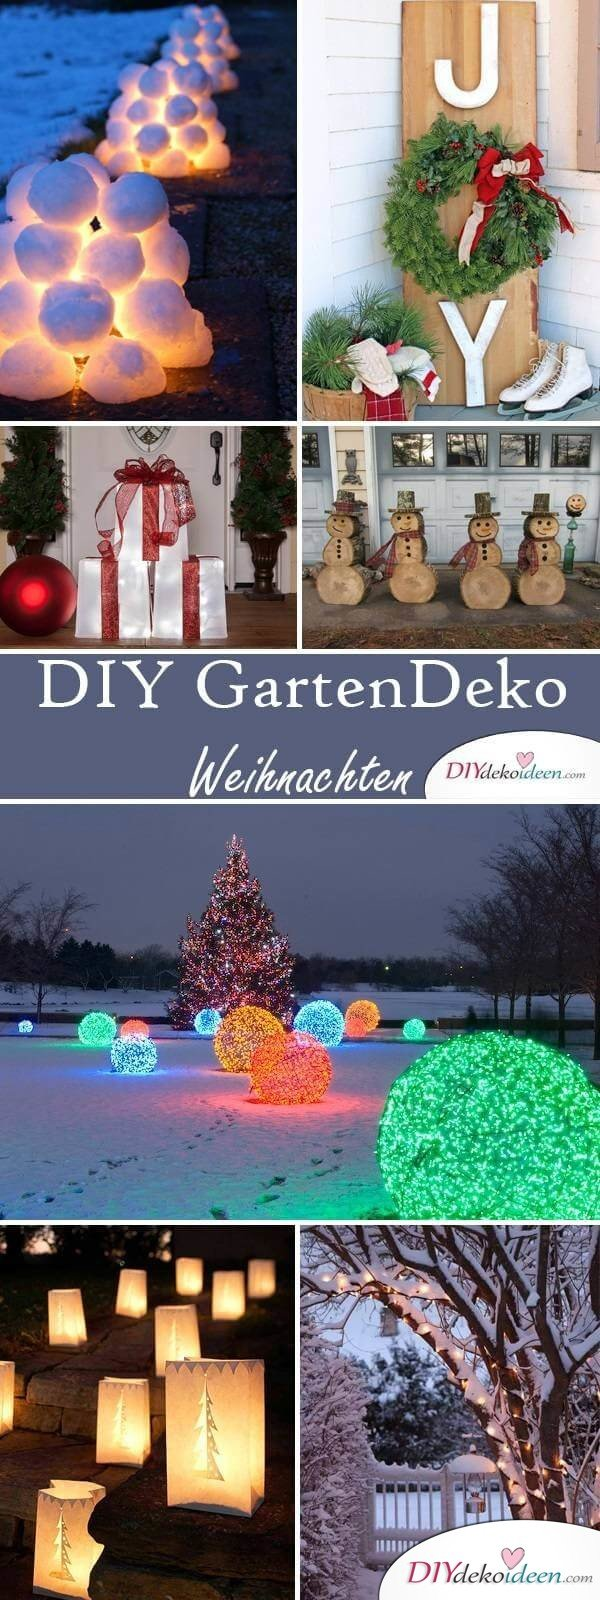 diy deko ideen zu weihnachten den garten gestalten. Black Bedroom Furniture Sets. Home Design Ideas